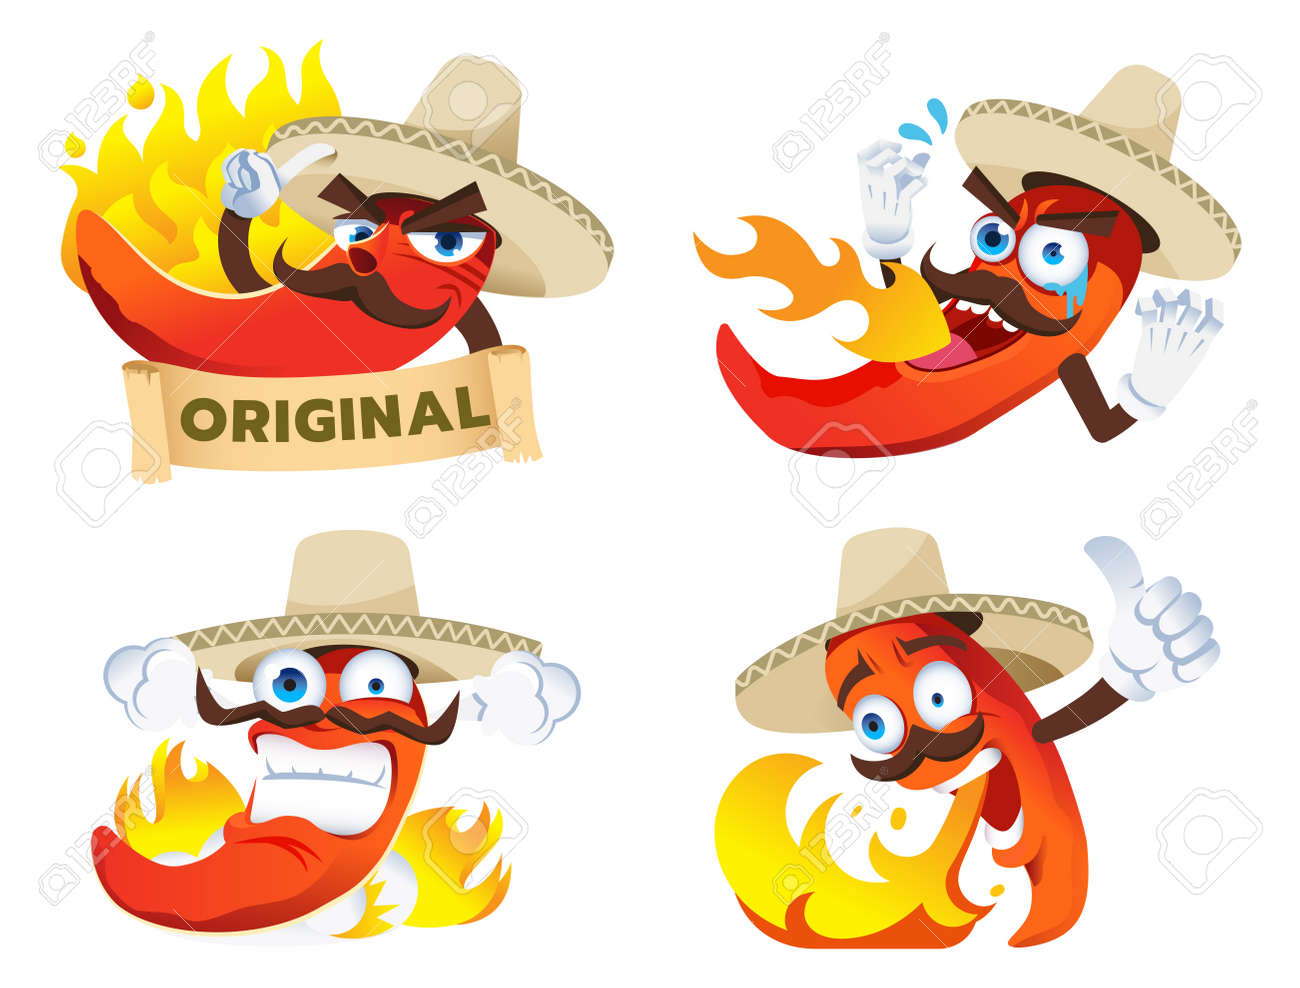 Chili cartoon character tasted a spicy from product's spiciness in Mexican style. Mascot for brands product concept design. - 170186240